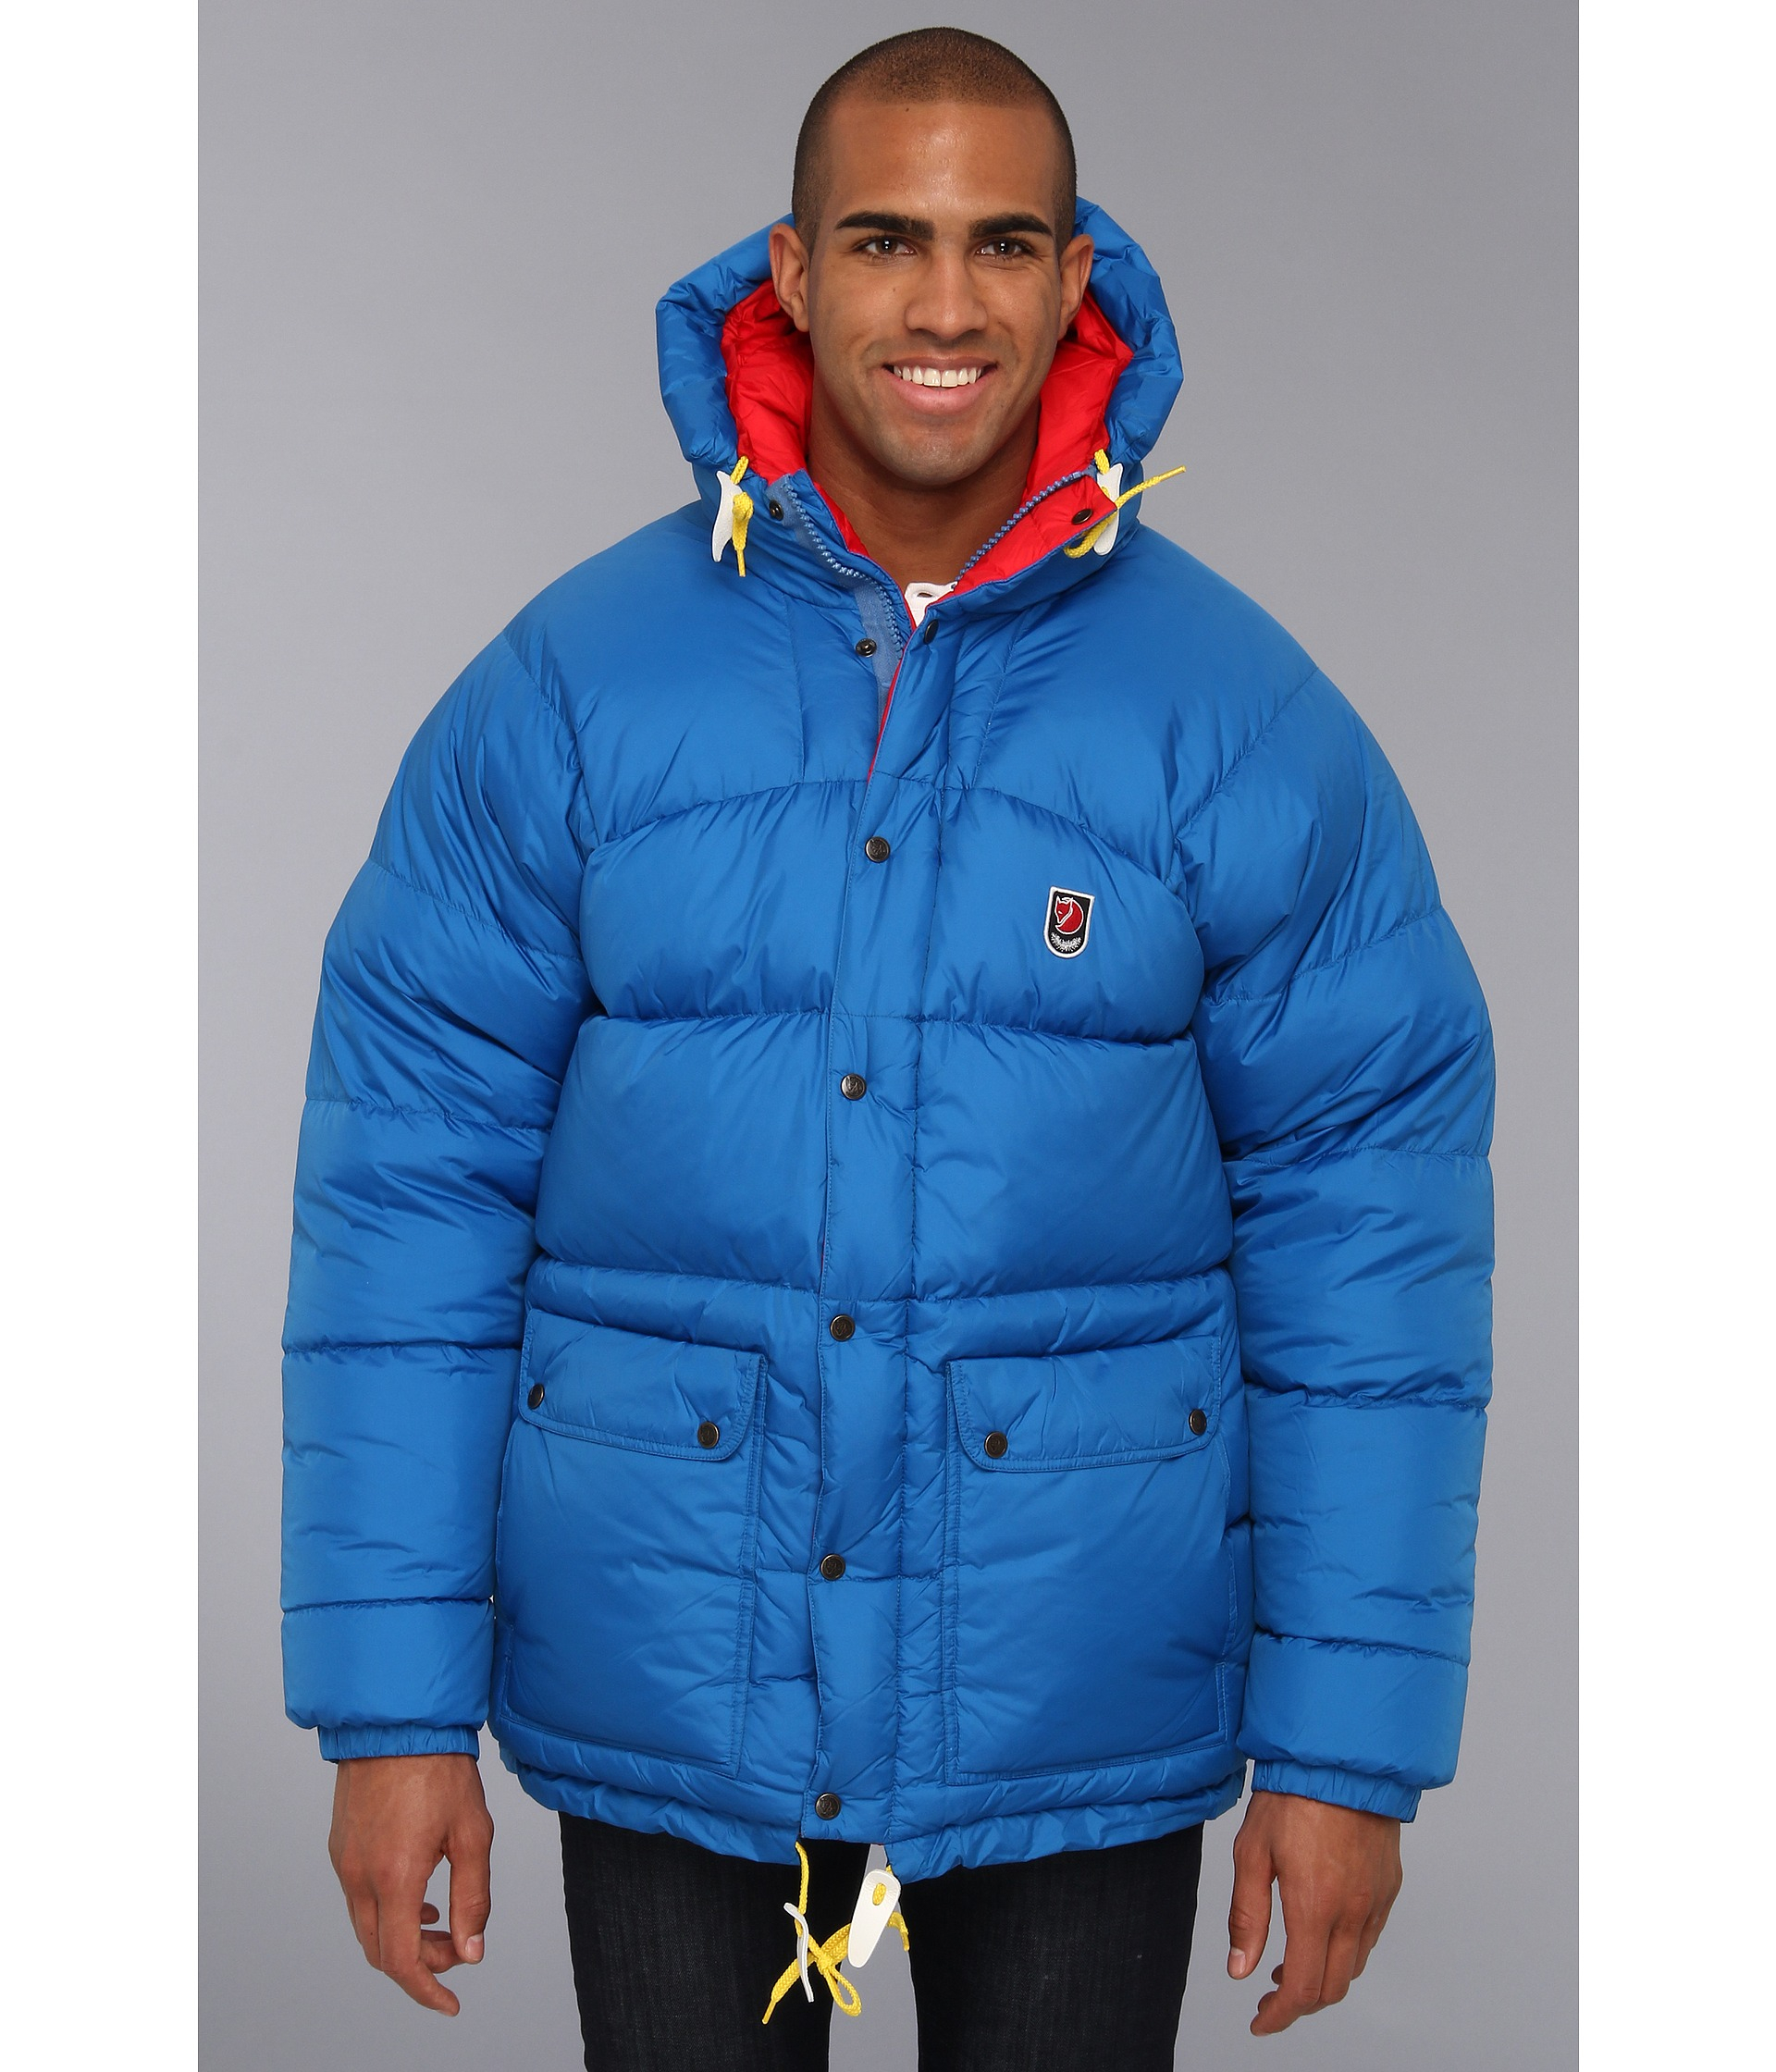 Expedition down jacket 4aa3c280c632c